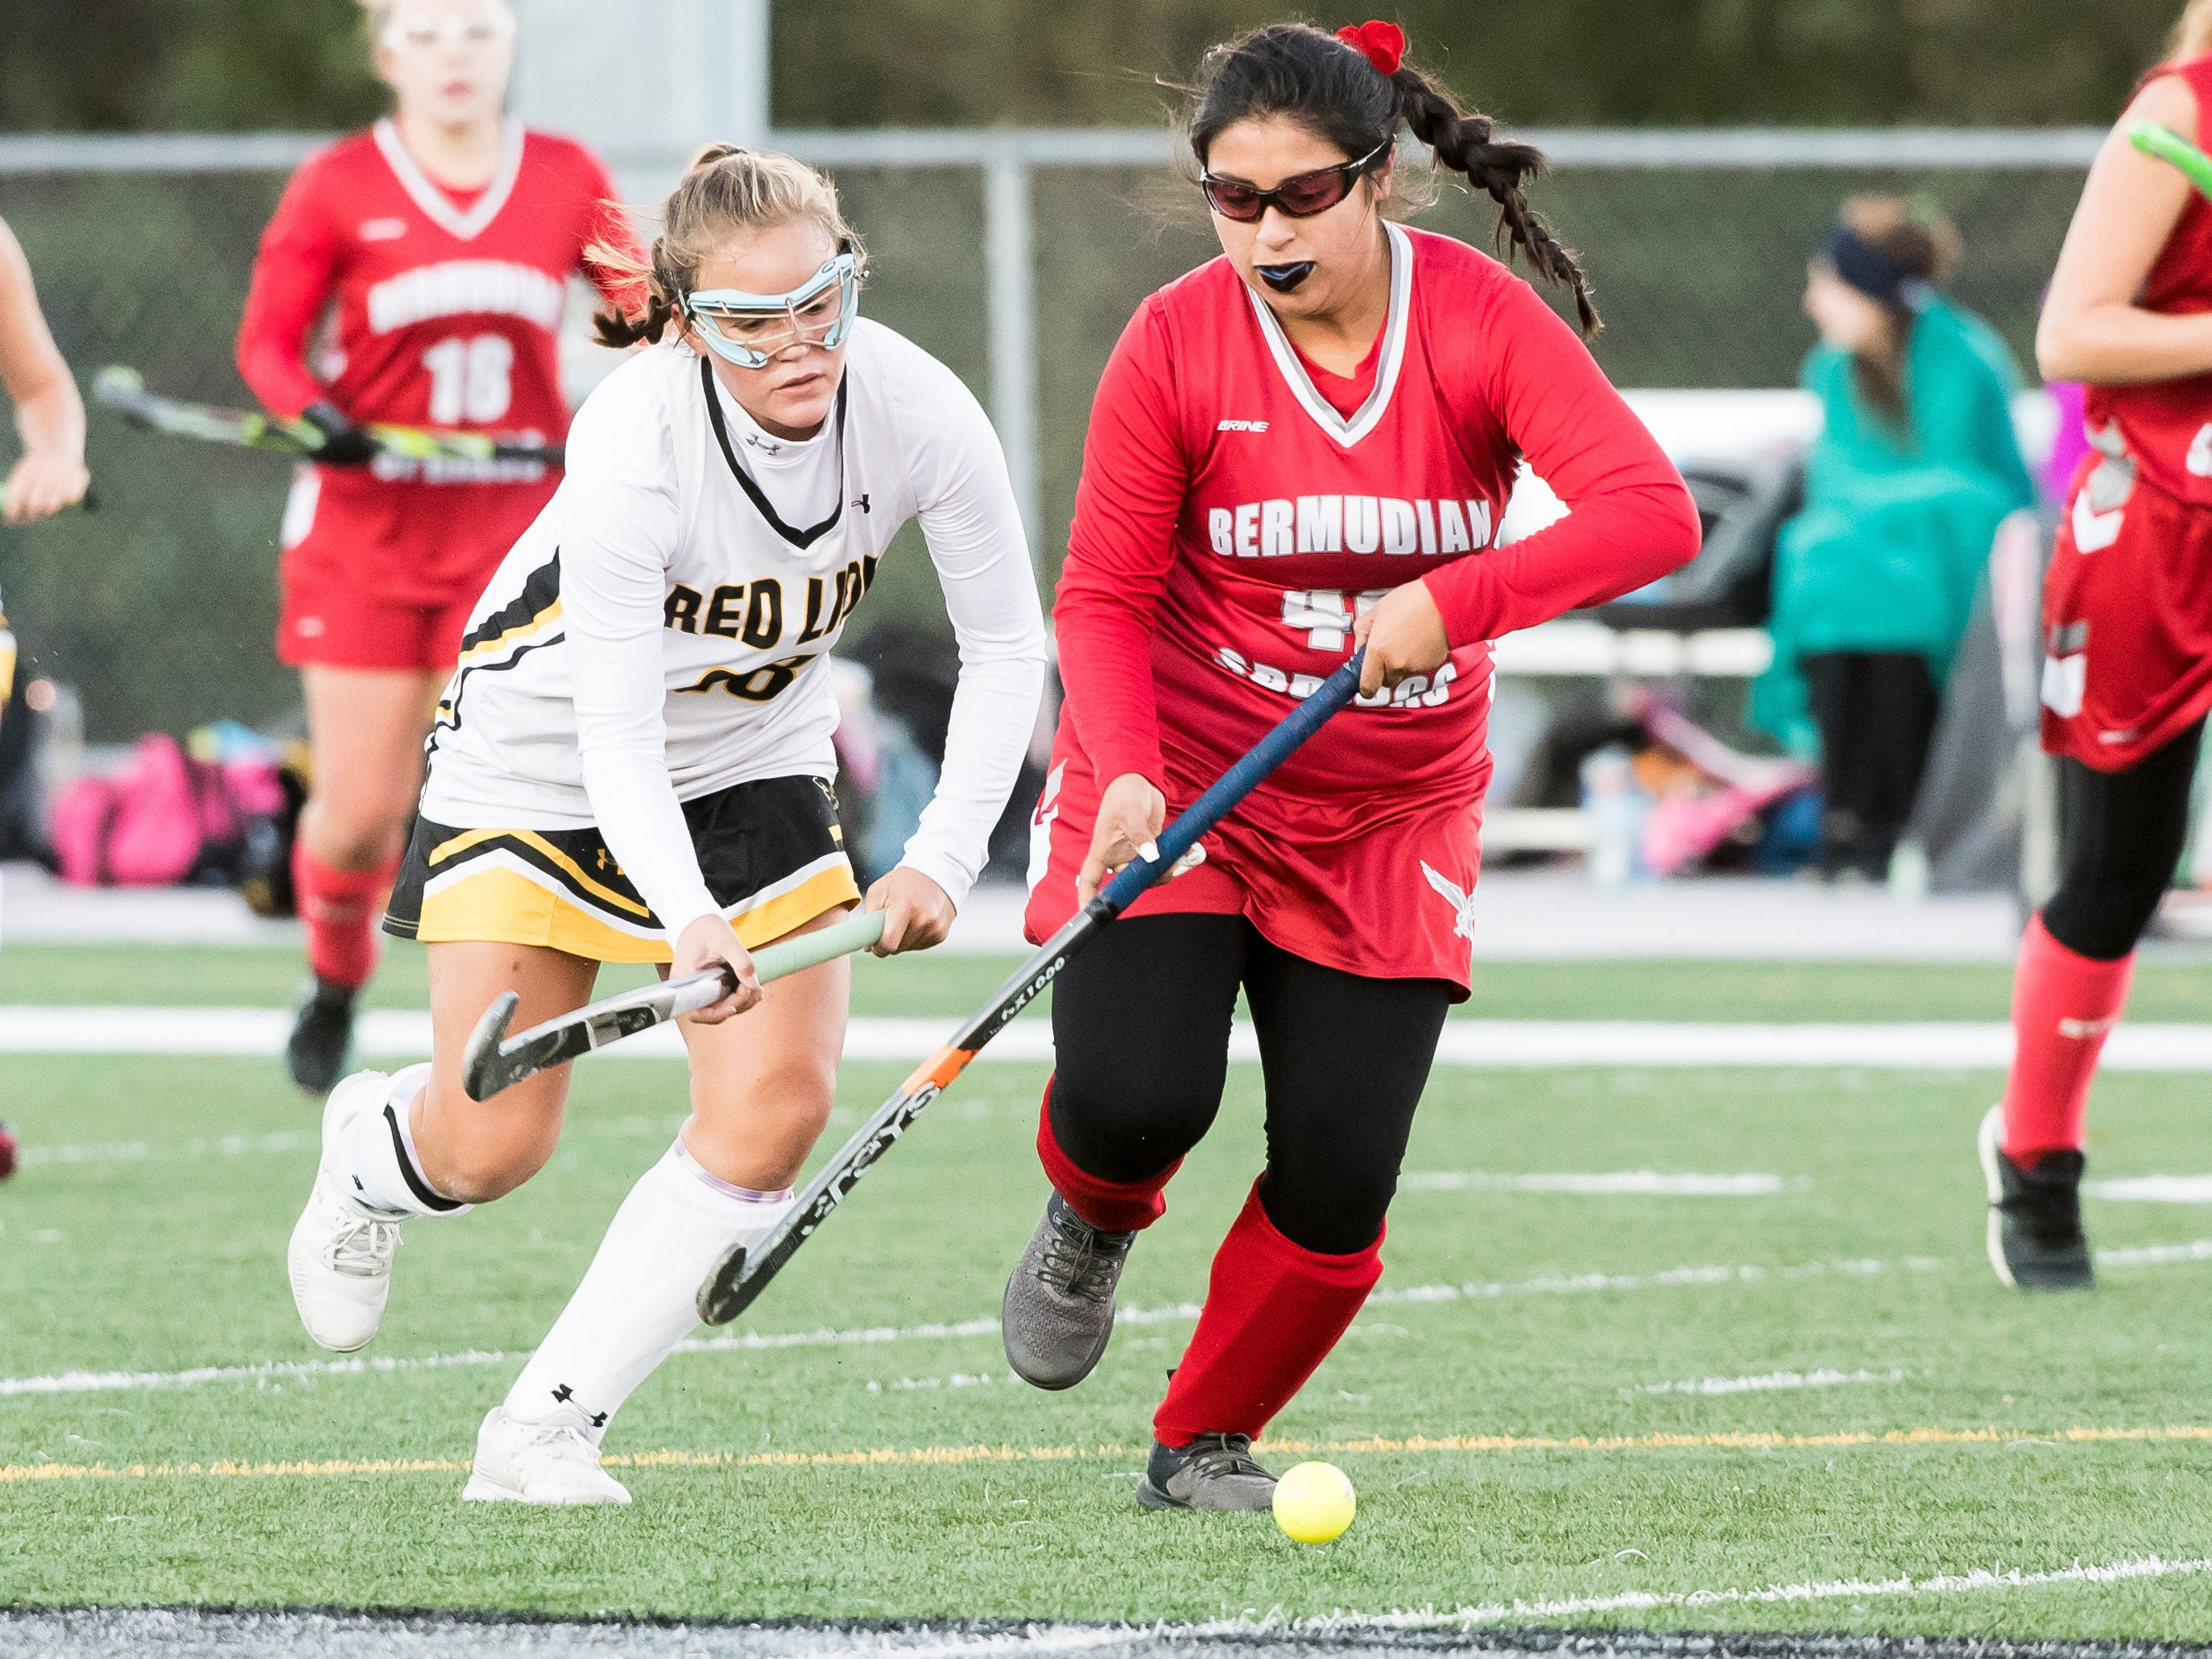 Red Lion's Coda Fisher and Bermudian Springs' Cindy Rivera chase after the ball during a YAIAA tournament semifinal game on Thursday, October 18, 2018. The Lady Lions fell 2-0.